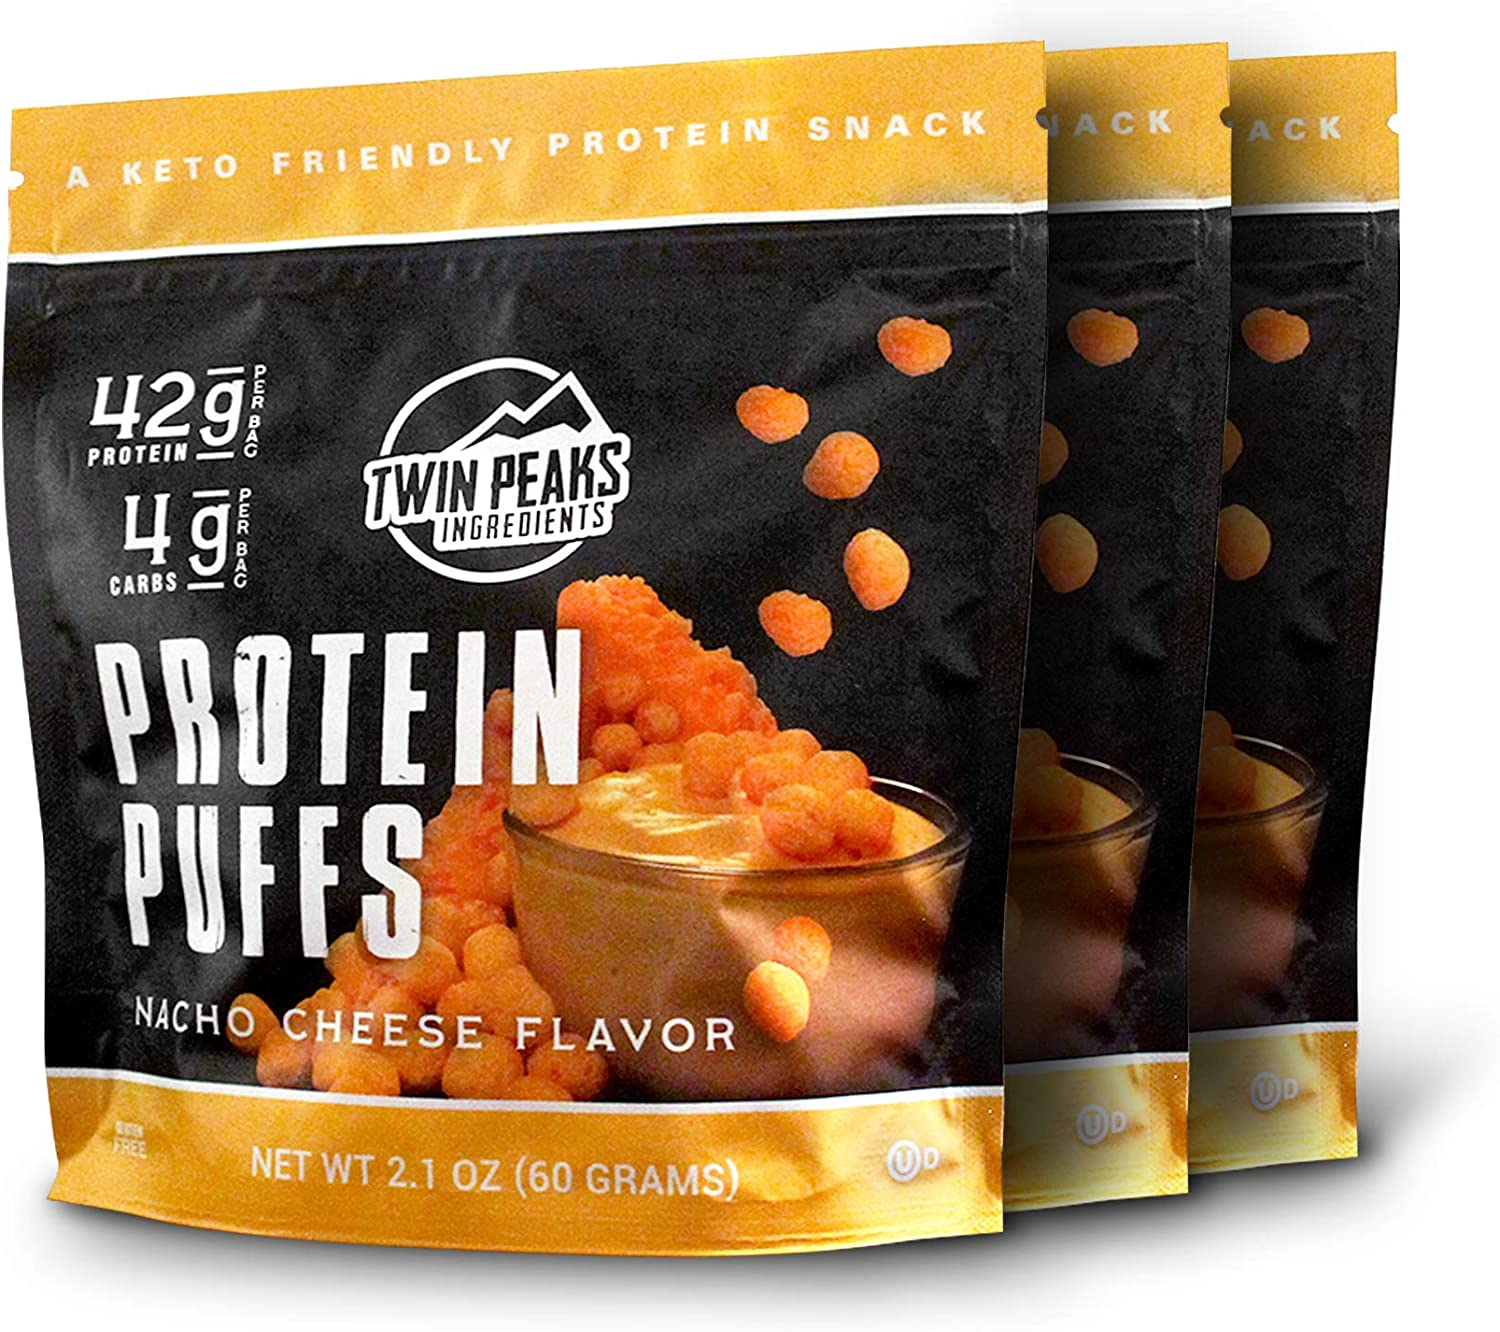 Twin Peaks Low Carb, Allergy Friendly Protein Puffs, Nacho Cheese, 2 Servings, 3 Pack (60g, 42g Protein, 4g Carbs)